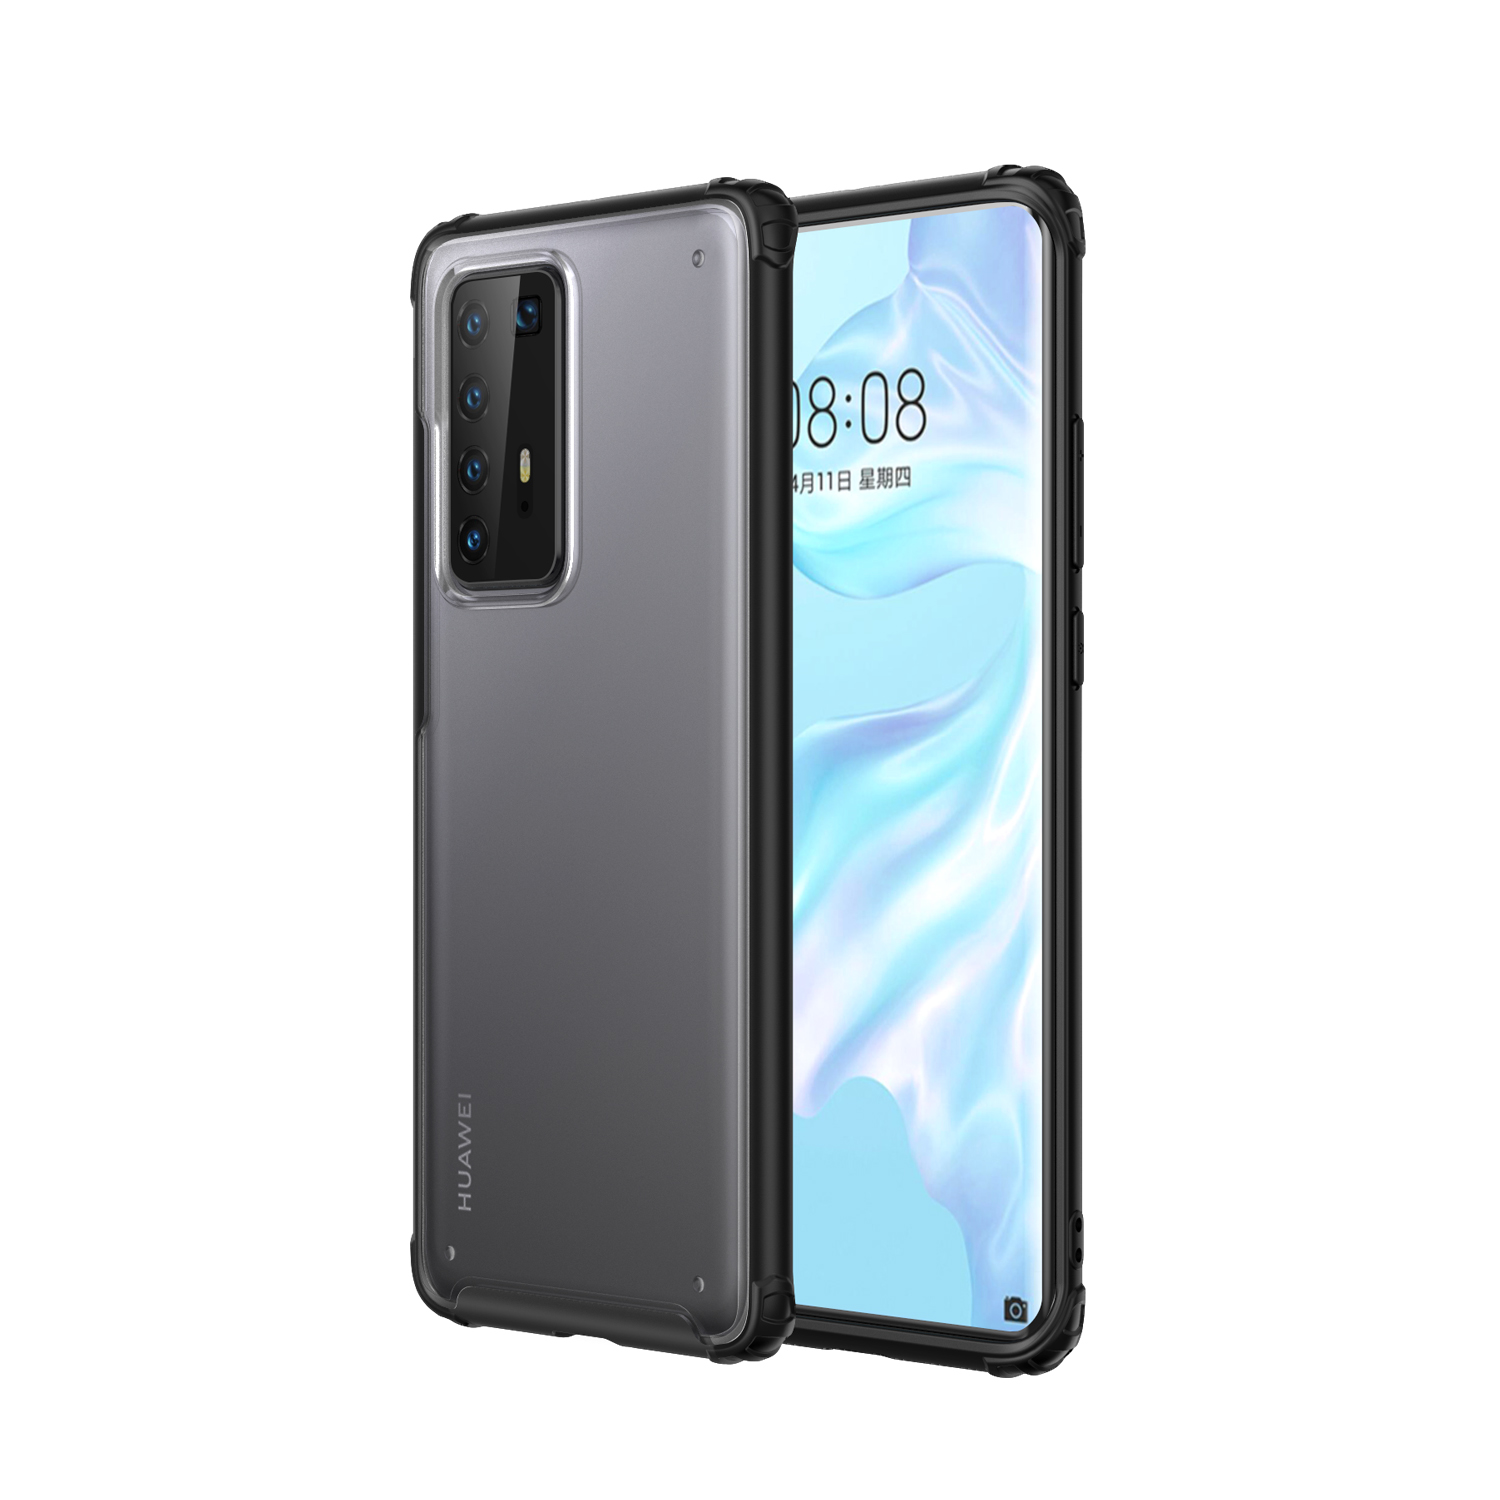 For HUAWEI P40 Pro Case PC Matte bottom TPU Soft Edge Cover Shockproof Mobile Phone Cover black